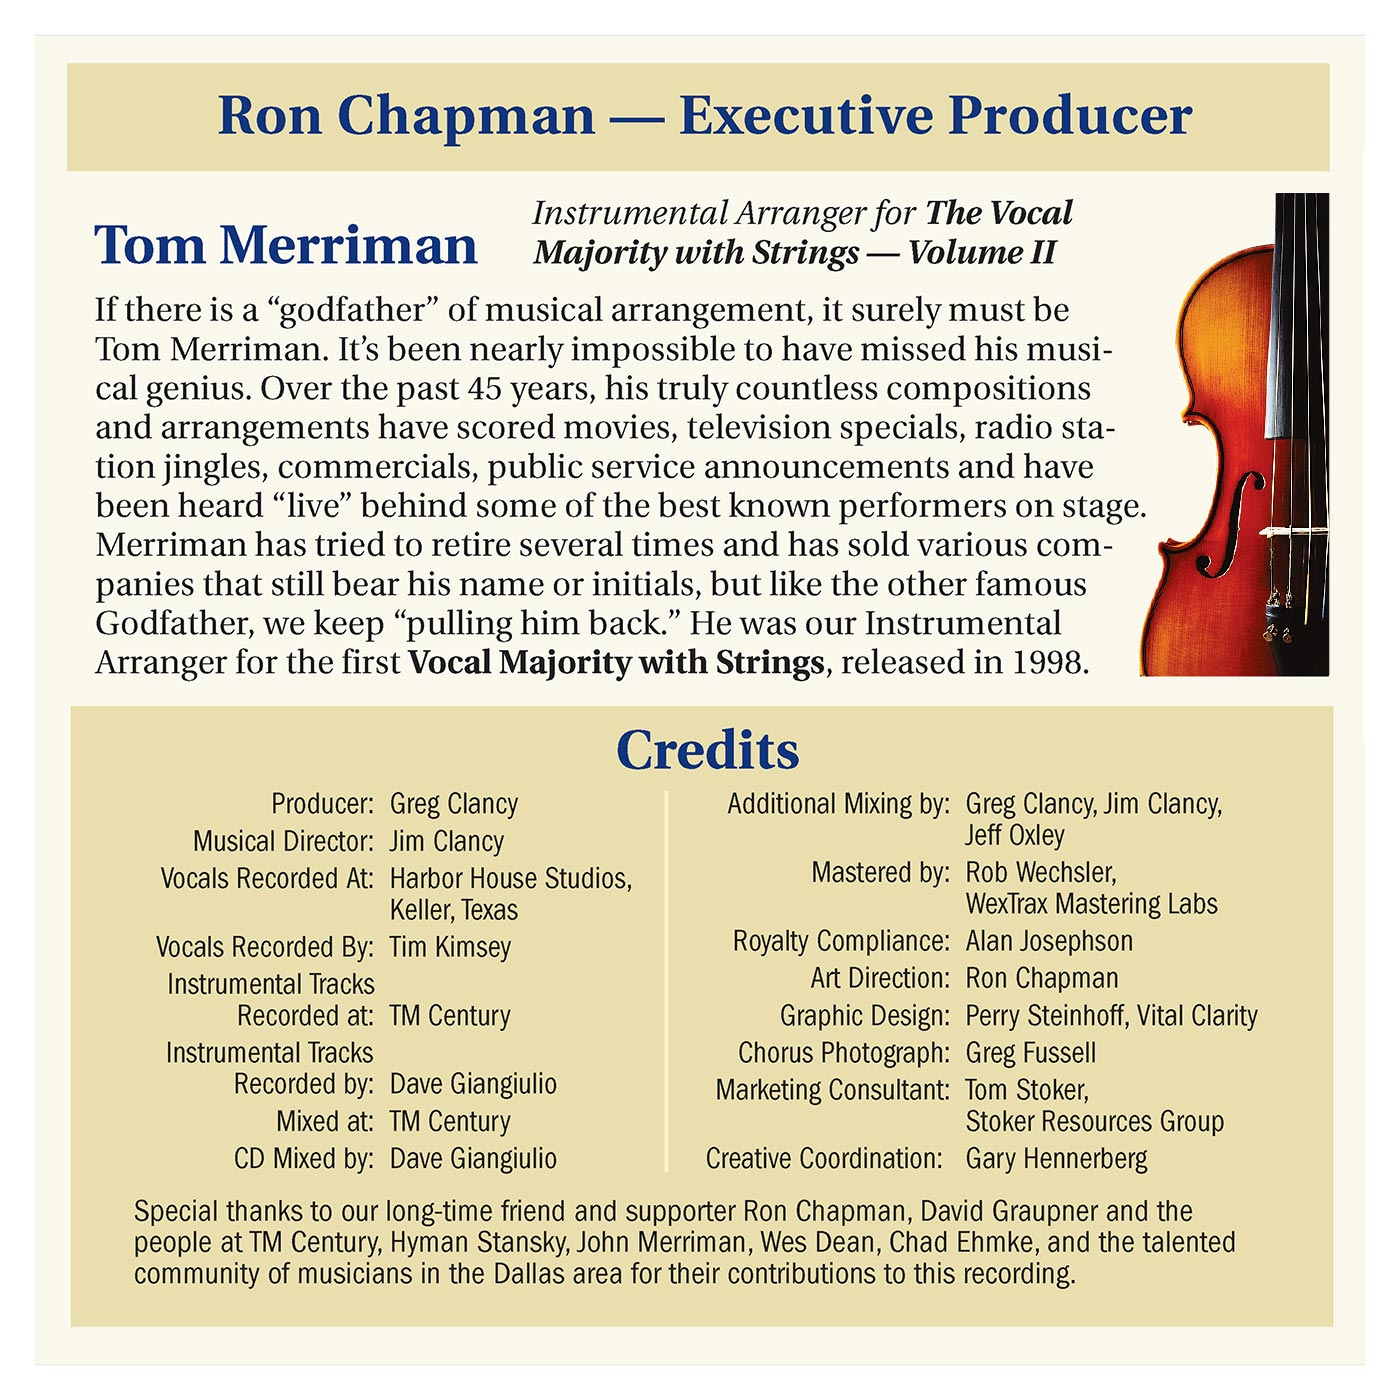 Booklet Inside Middle Panel: VM With Strings Vol. 2